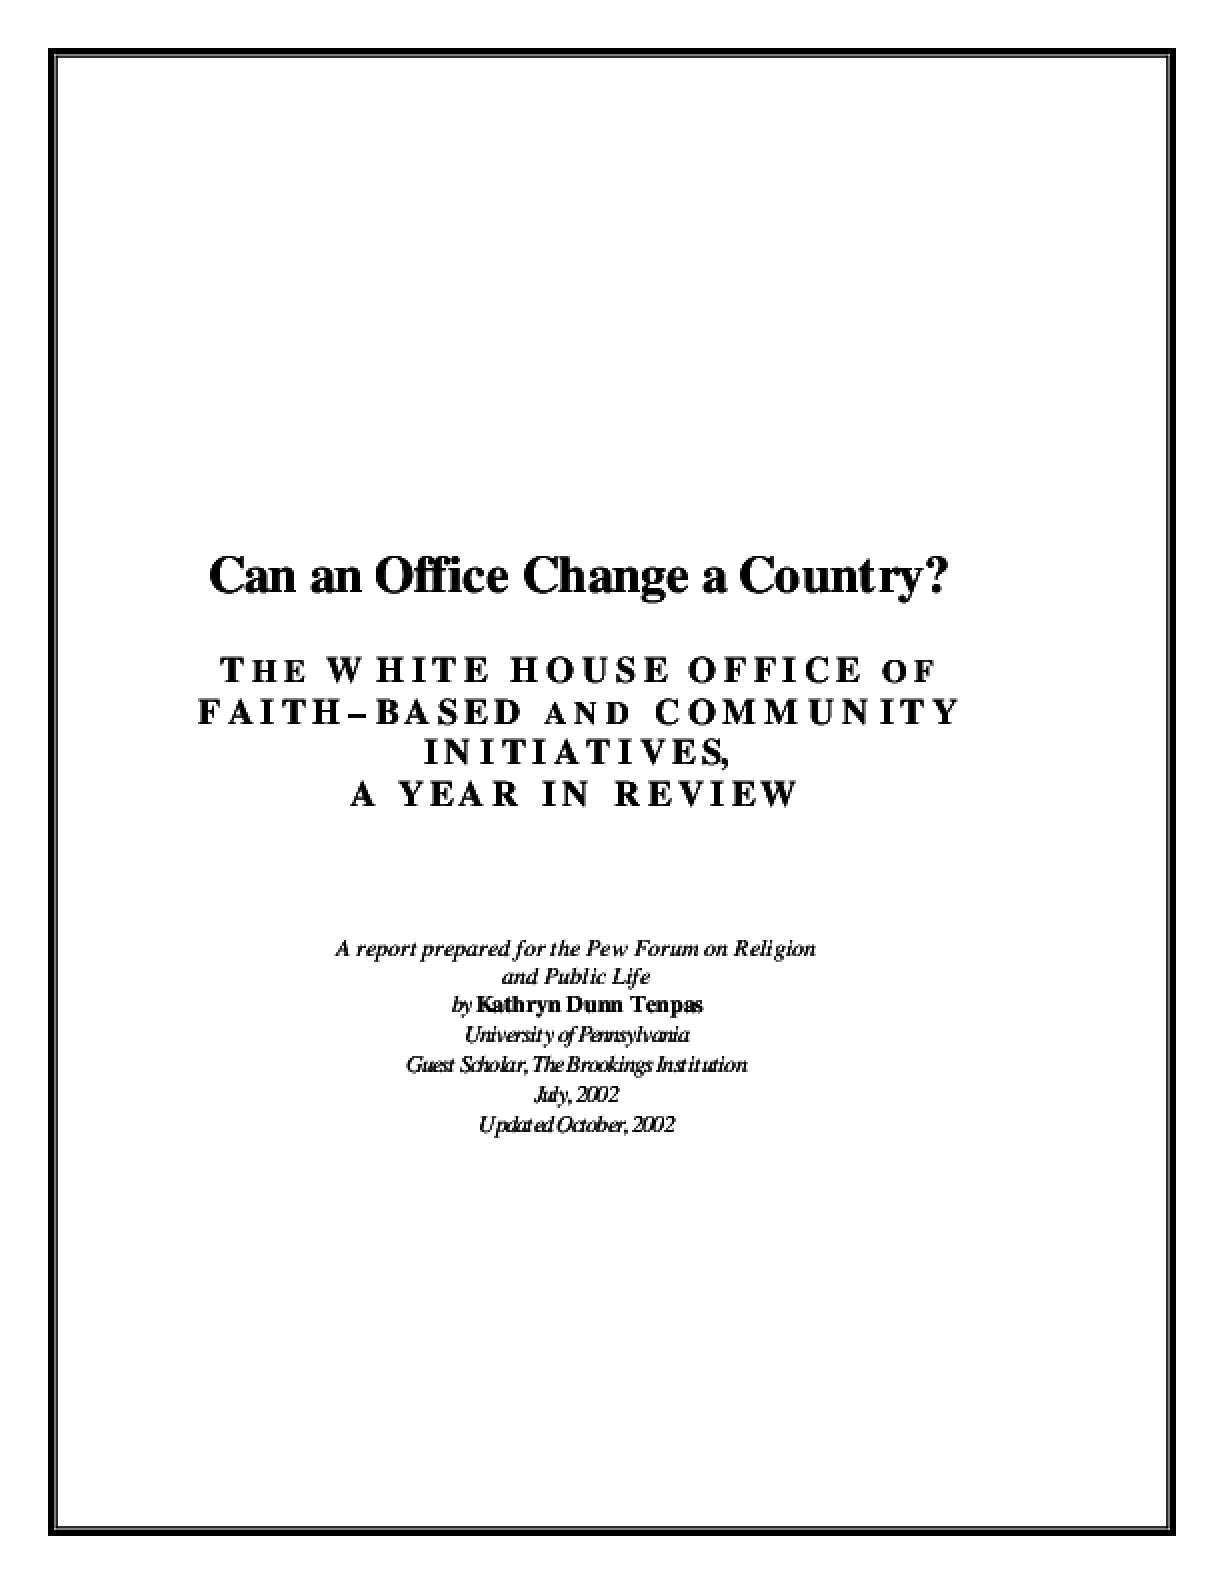 Can an Office Change a Country? The White House Office of Faith-Based and Community Initiatives: A Year in Review